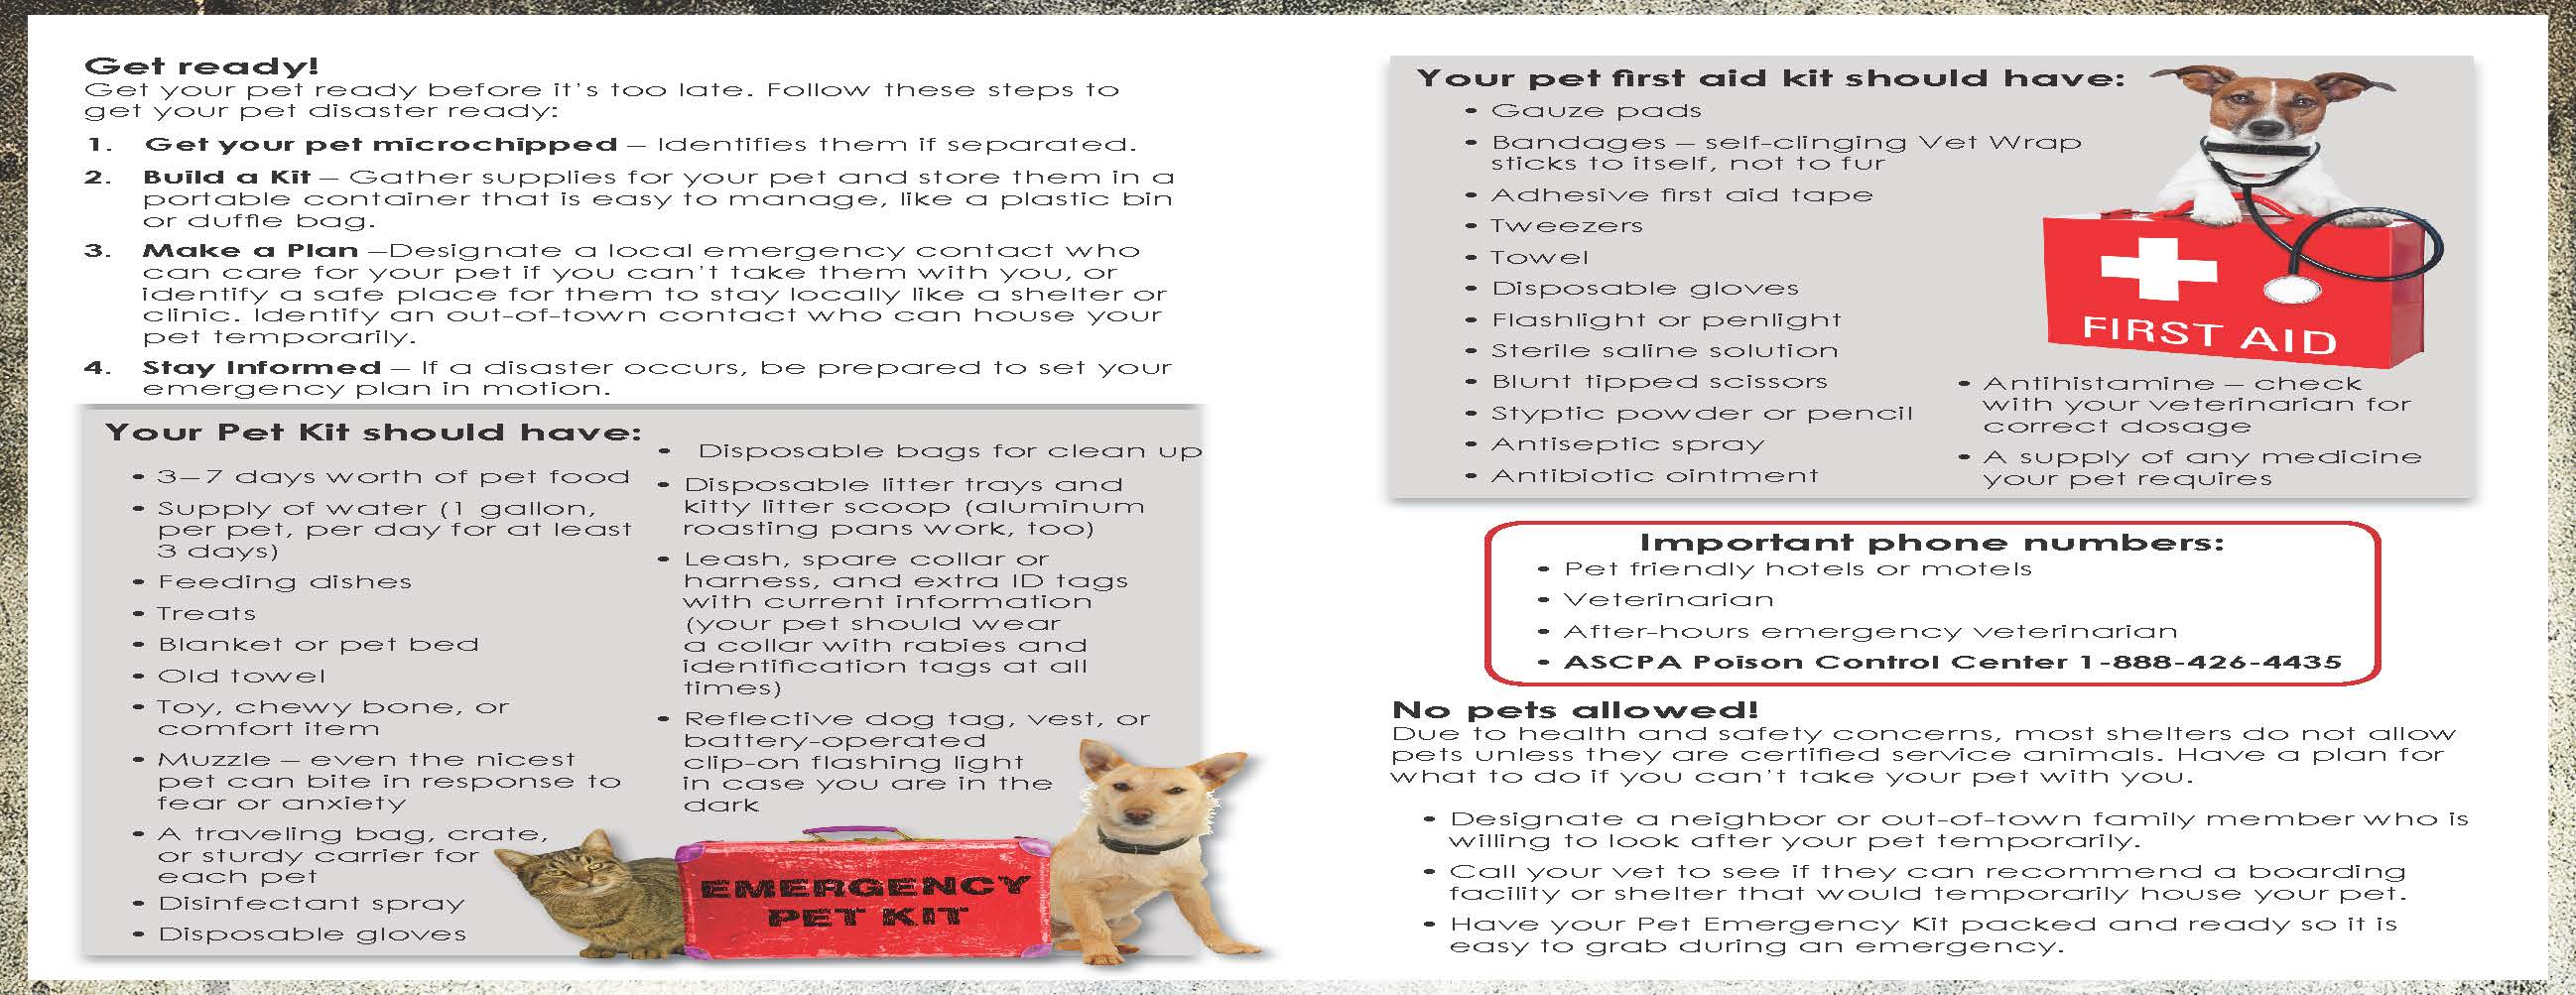 Pet Brochure - updated 11_18_15_Page_2